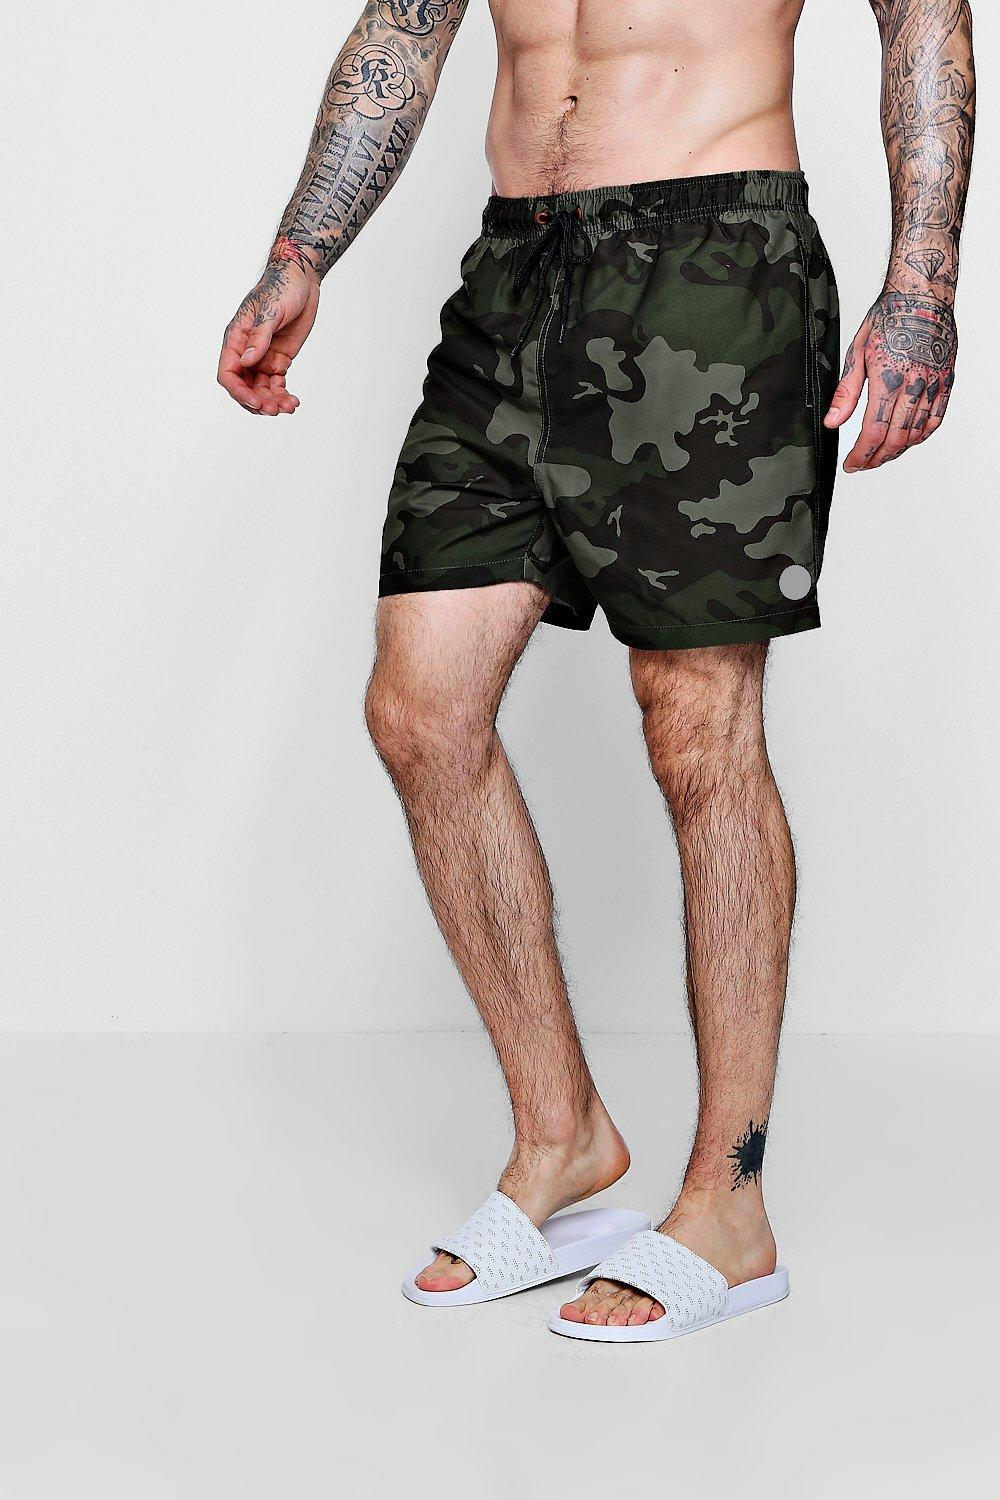 Boohoo Lyst Men For Shorts Swim Camo Print txChrsQd